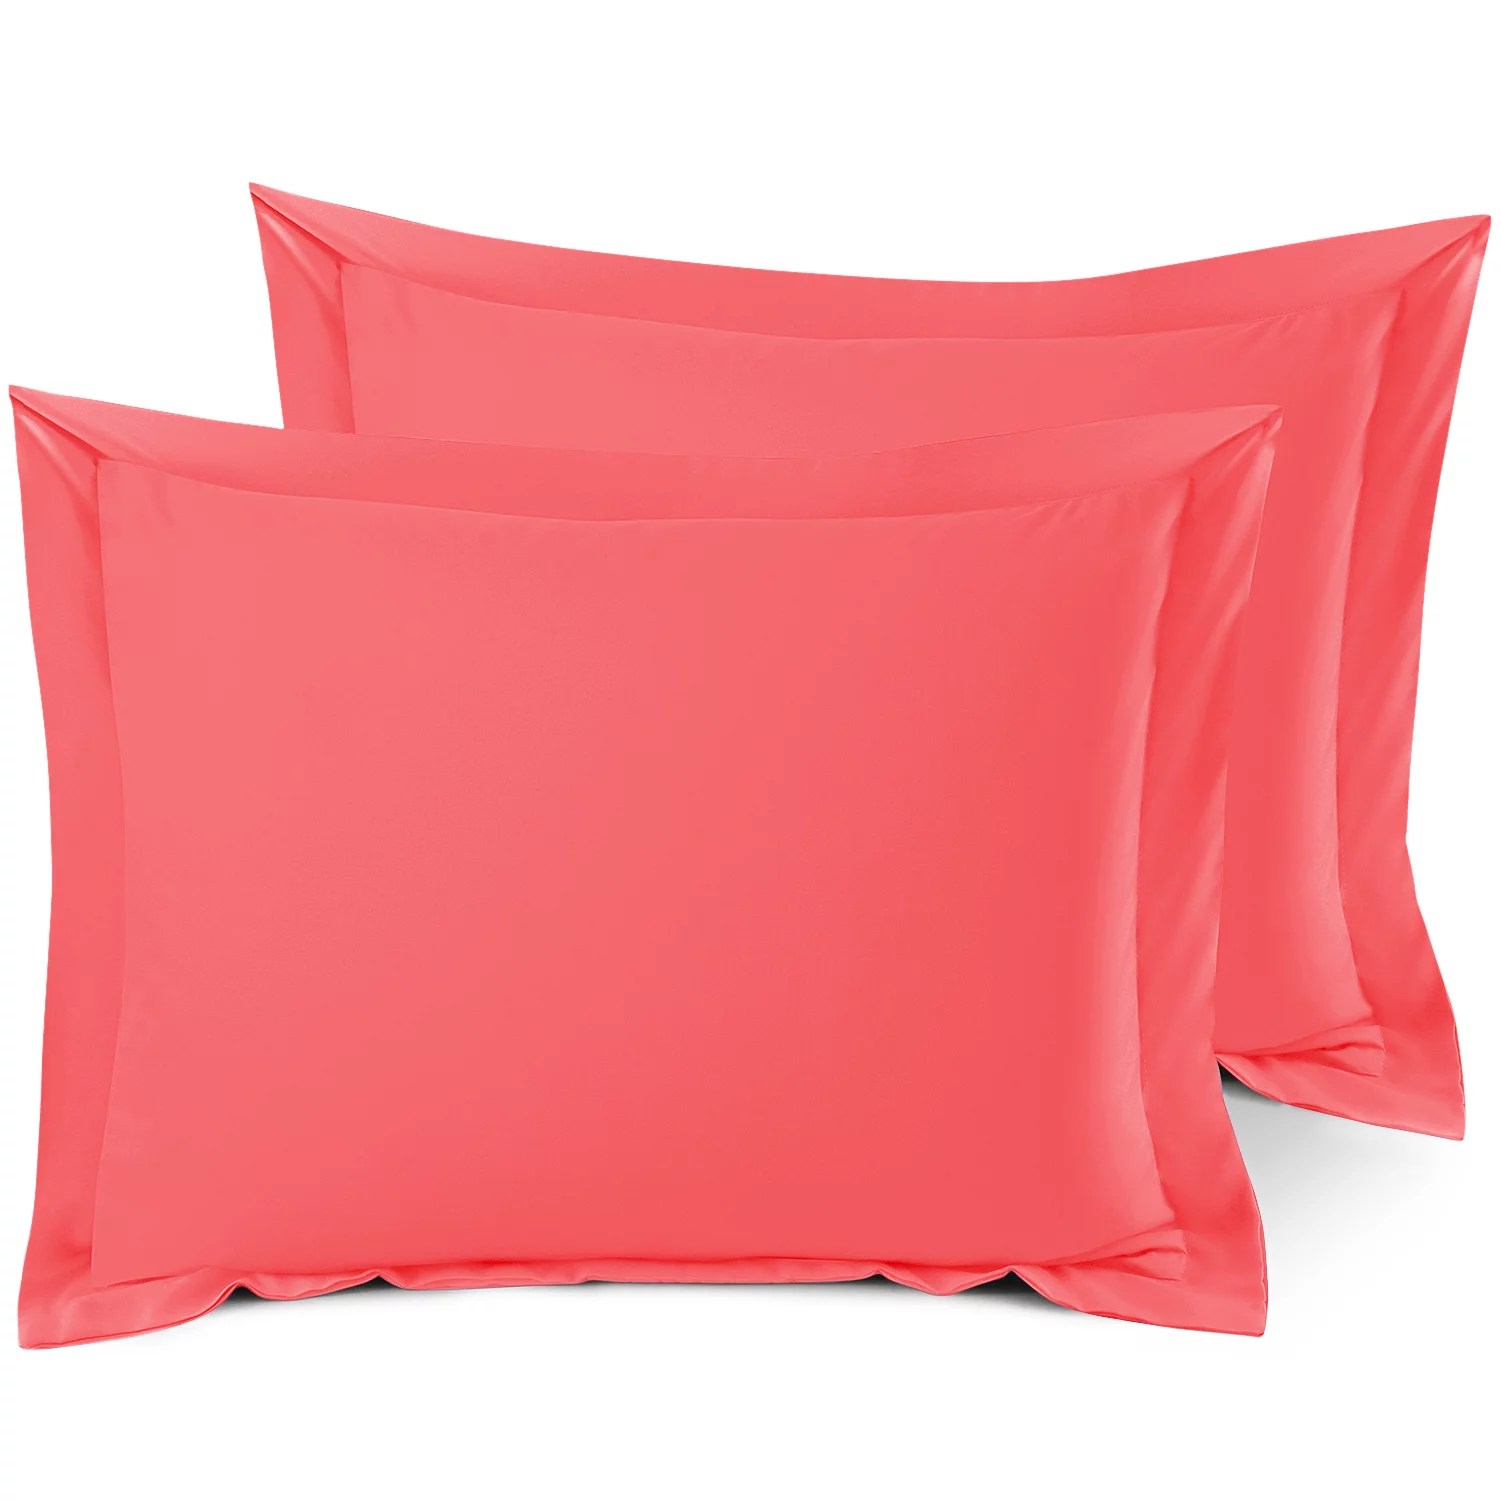 set of 2 standard 20 x26 size pillow shams coral pink hotel luxury soft double brushed microfiber hypoallergenic bed pillow cases cover